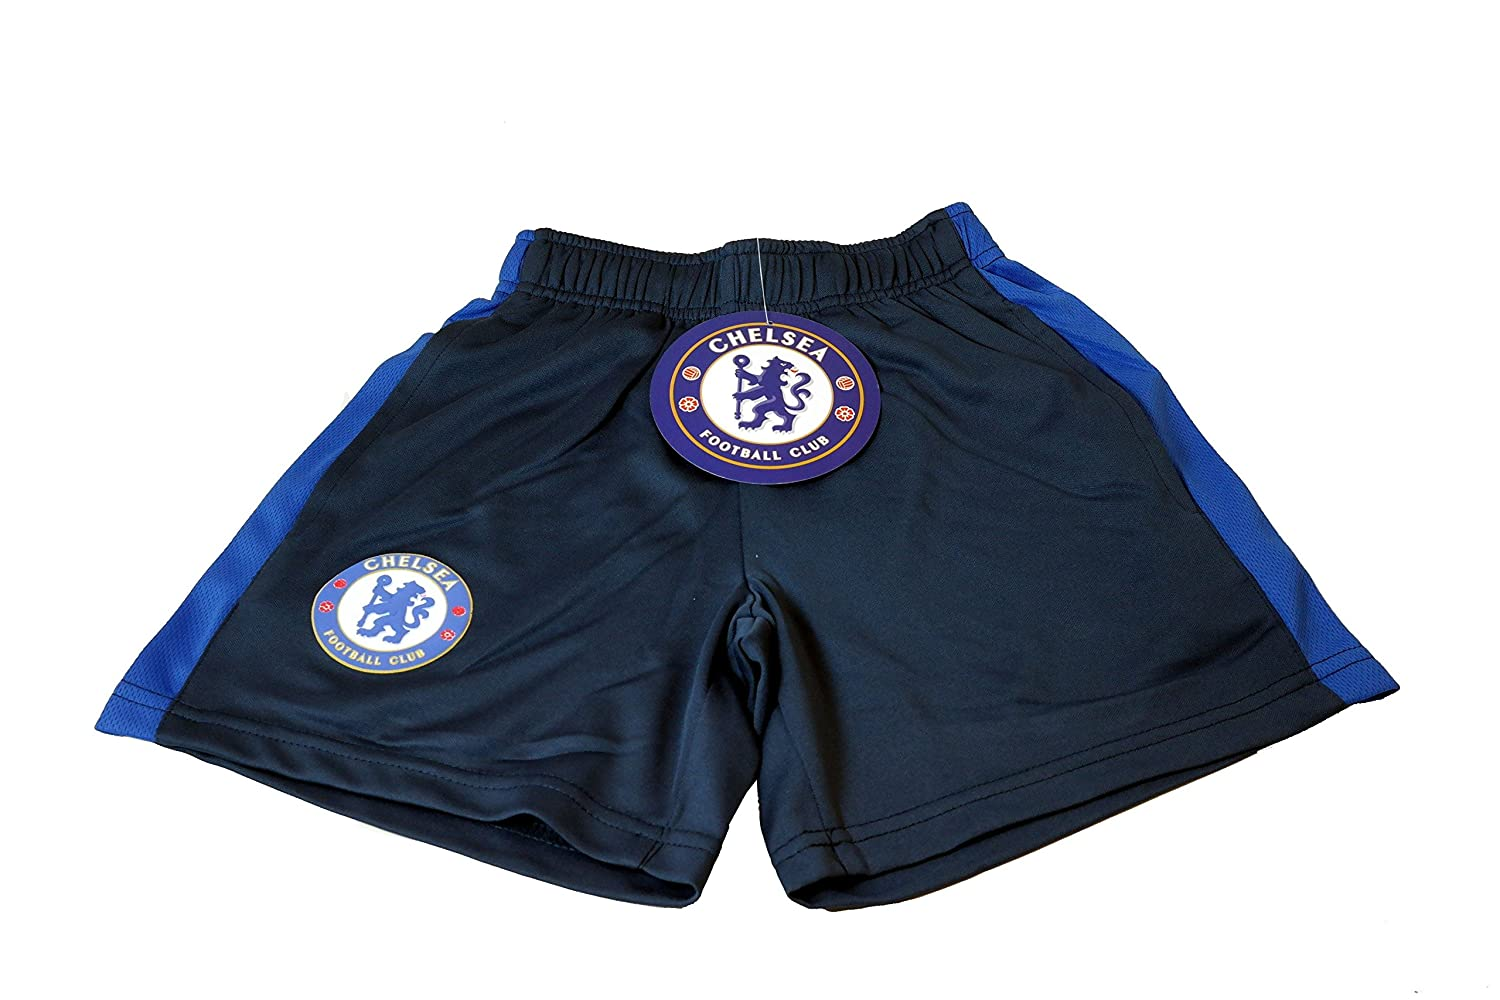 Chelsea FC Authentic Official Licensed Product Youth Soccer Shorts